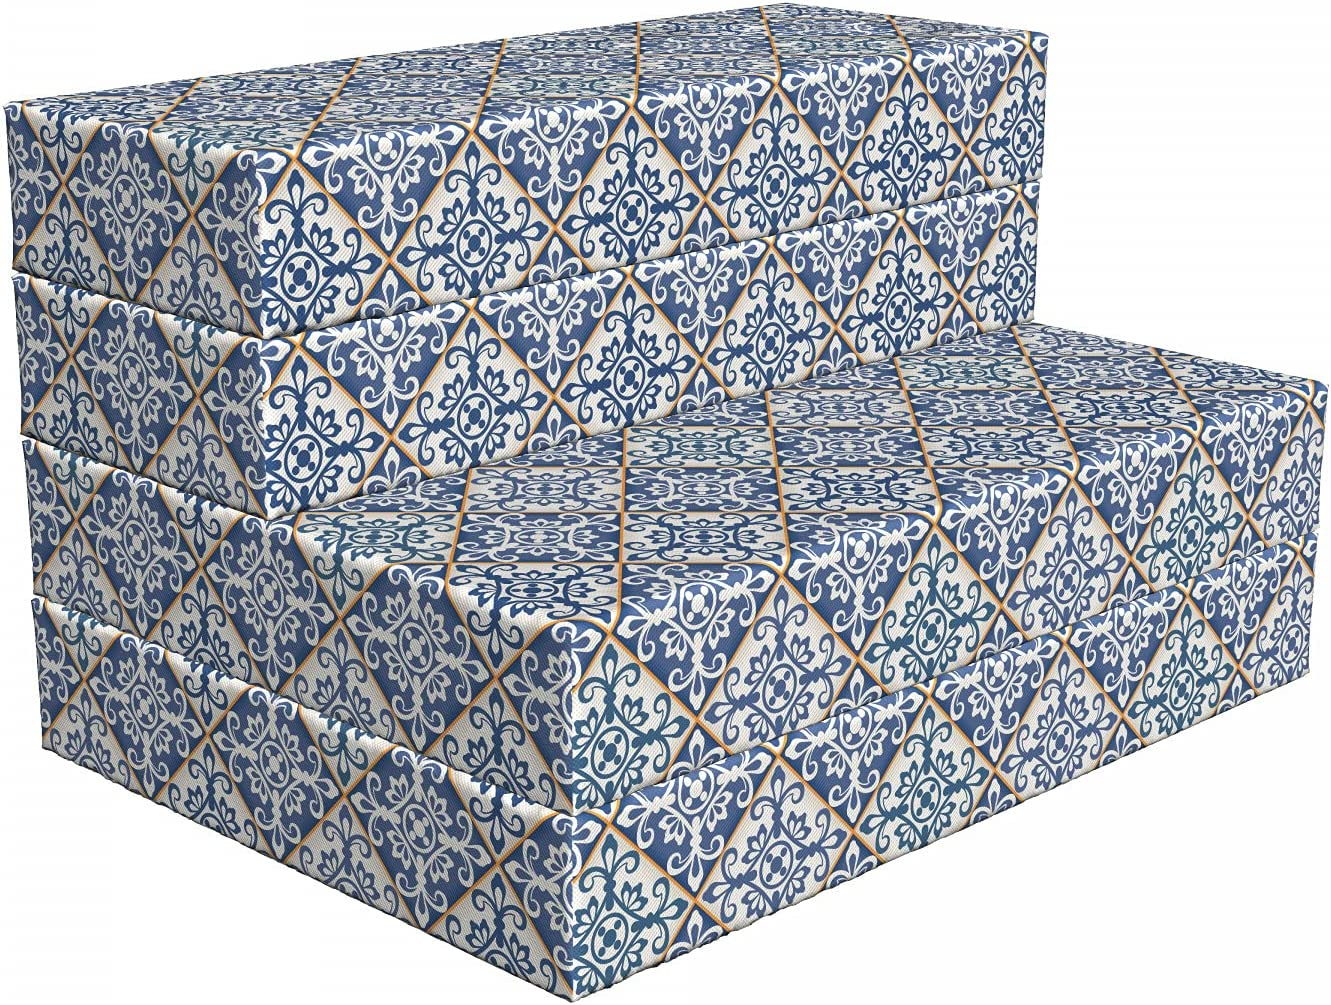 Ambesonne Moroccan Foldable Mattress Ceramic Motif Free shipping anywhere in the nation 74. Azulejo Ranking TOP8